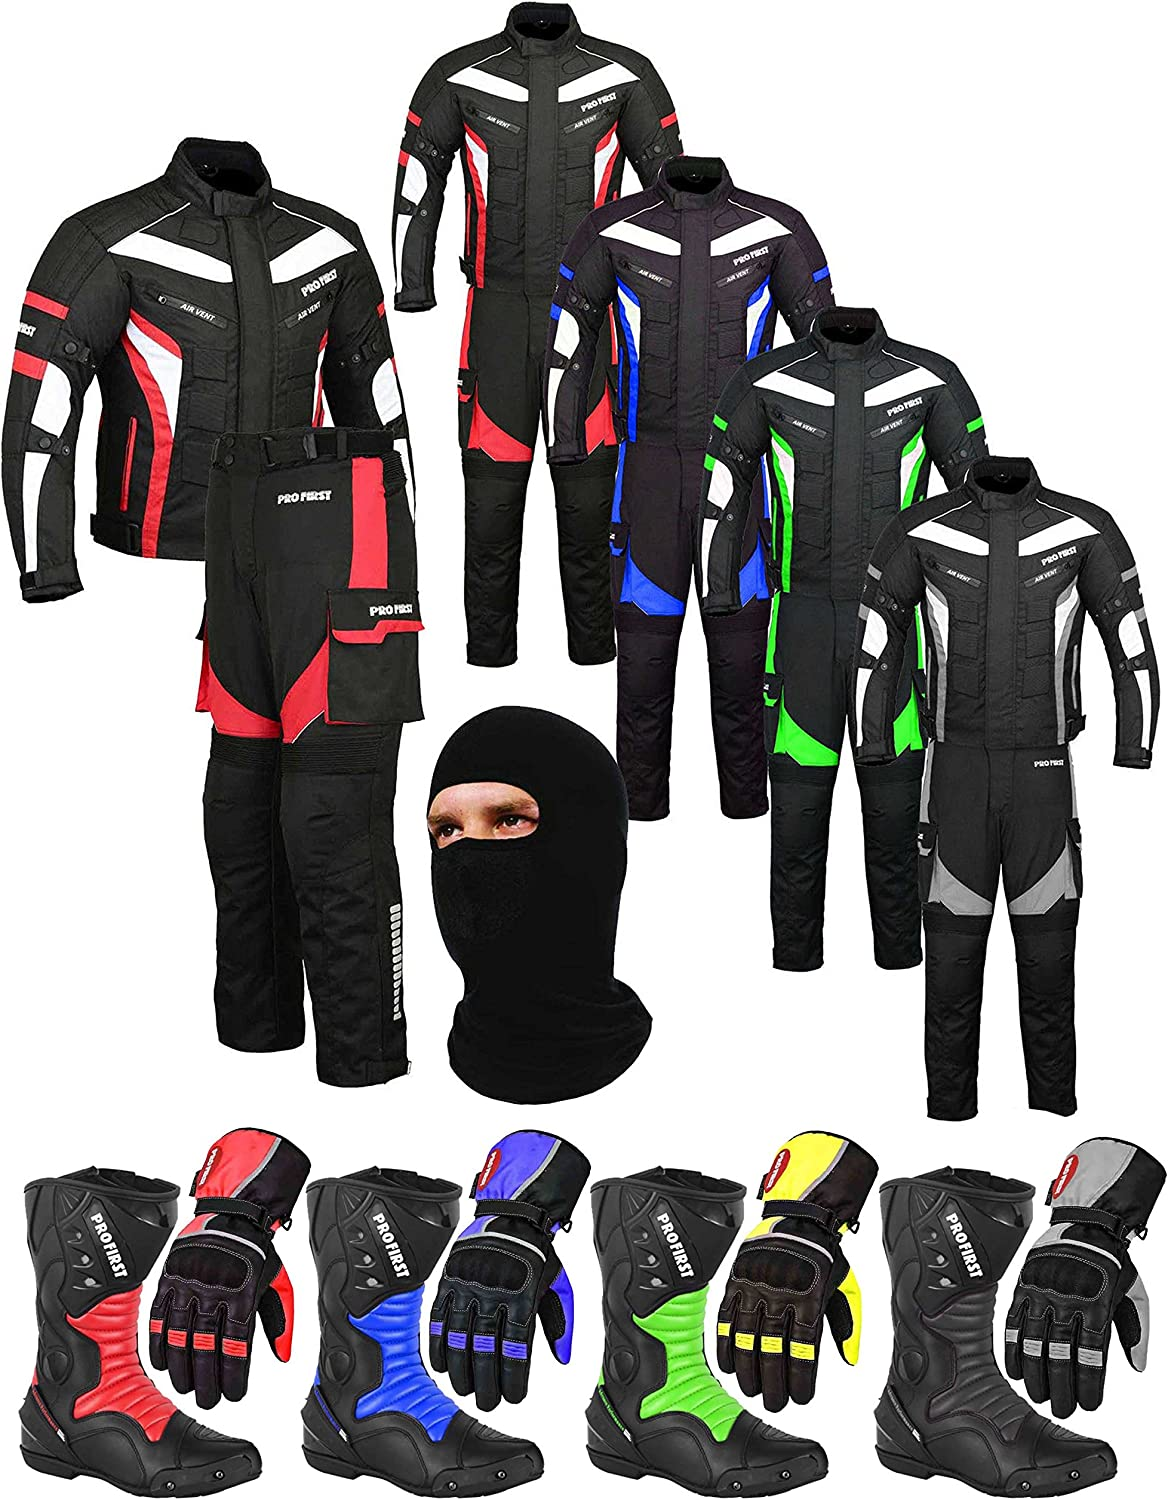 Racing Touring Events - Boots Jacket Trouser Blue - Large Balaclava A Full Set of Waterproof Motorbike Motorcycle Moped 2 Piece Suit in Cordura Fabric and CE Approved Armour Gloves